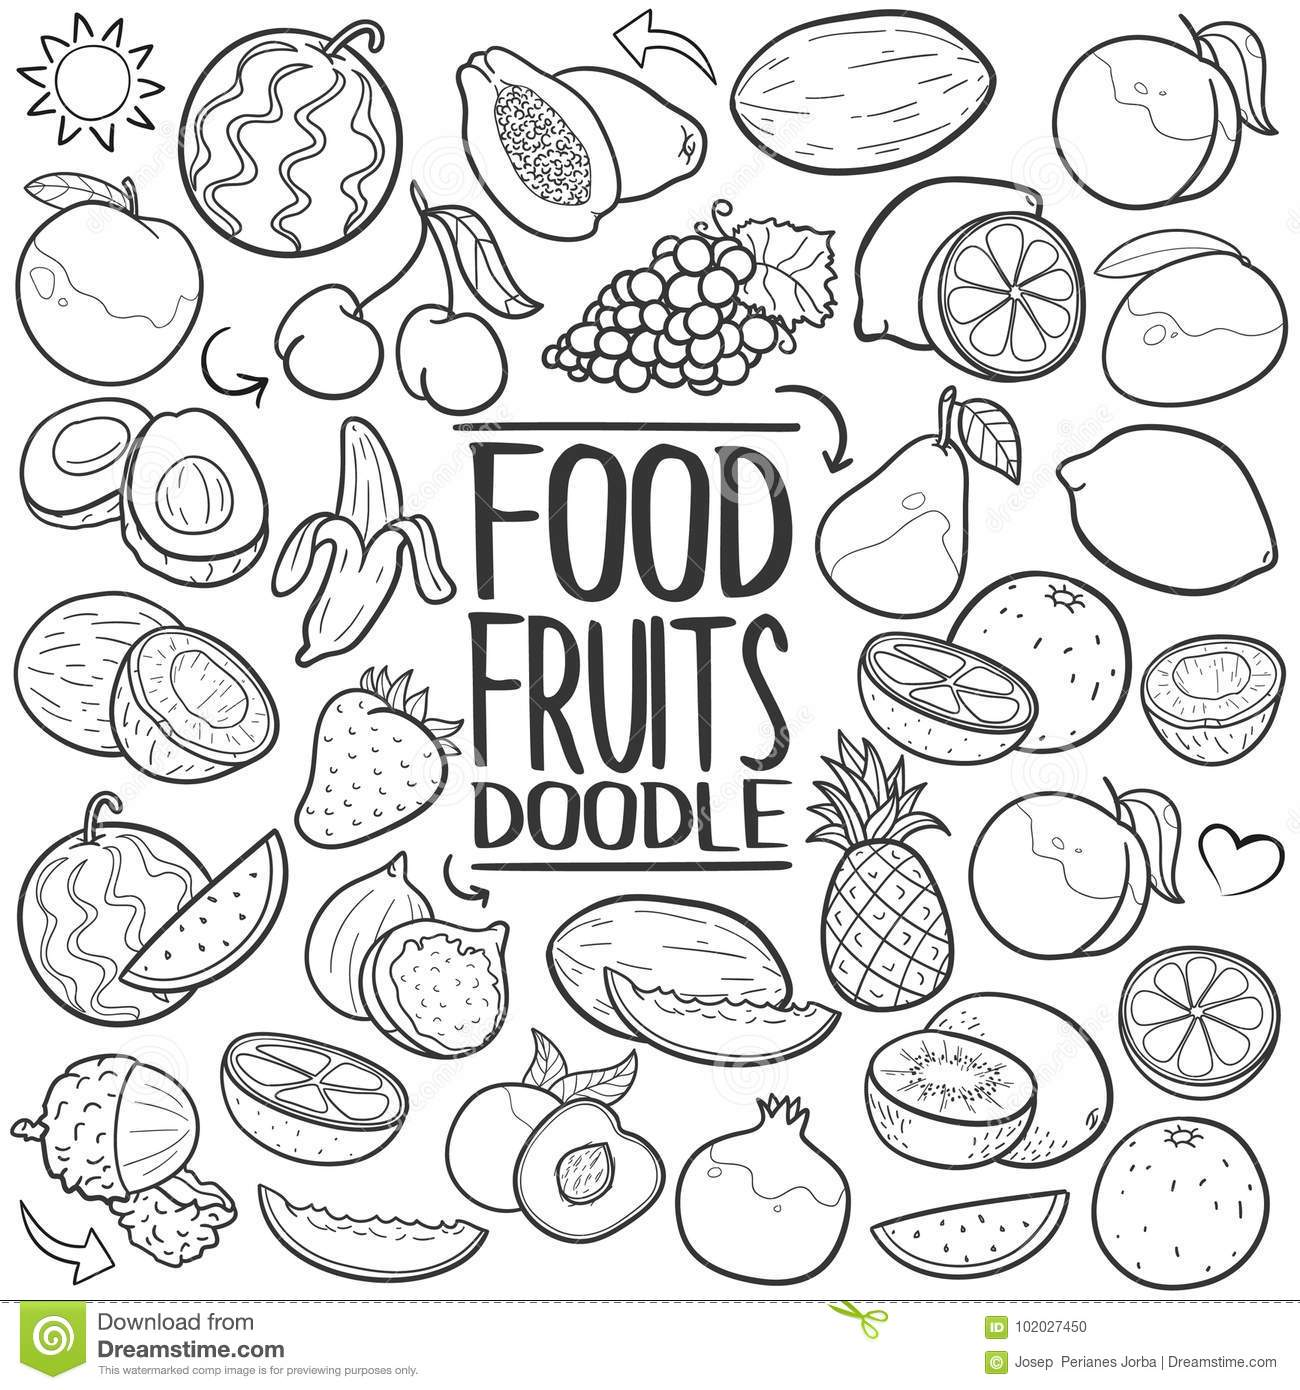 fruits vegetables healthy food traditional doodle icon hand draw set Food That Is Easy to Draw a emblematic elements of healthy fruits doodle style hand draw elements and objects set